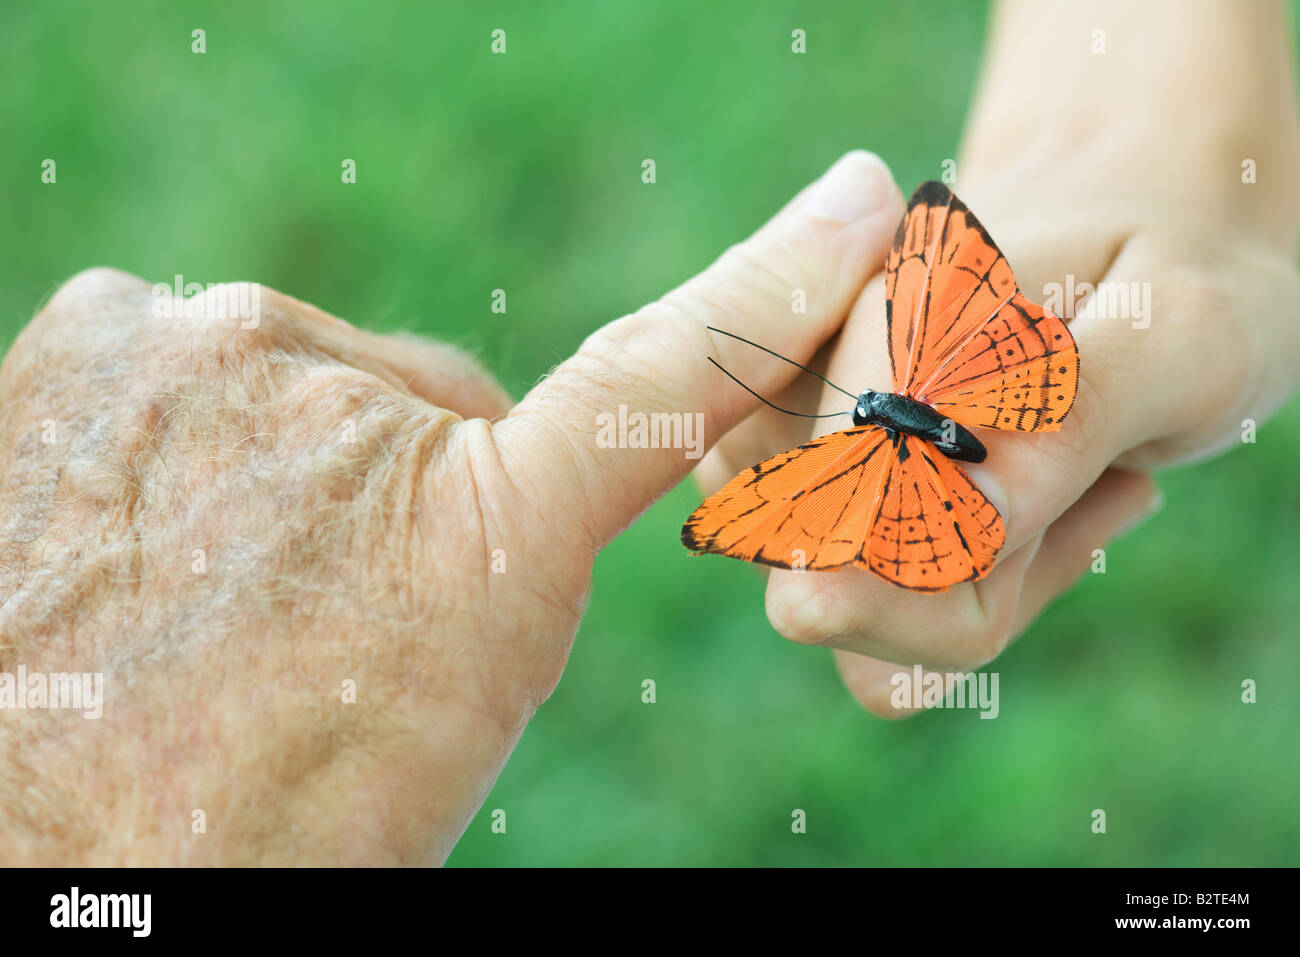 Hands of child and elderly person with butterfly, close-up - Stock Image